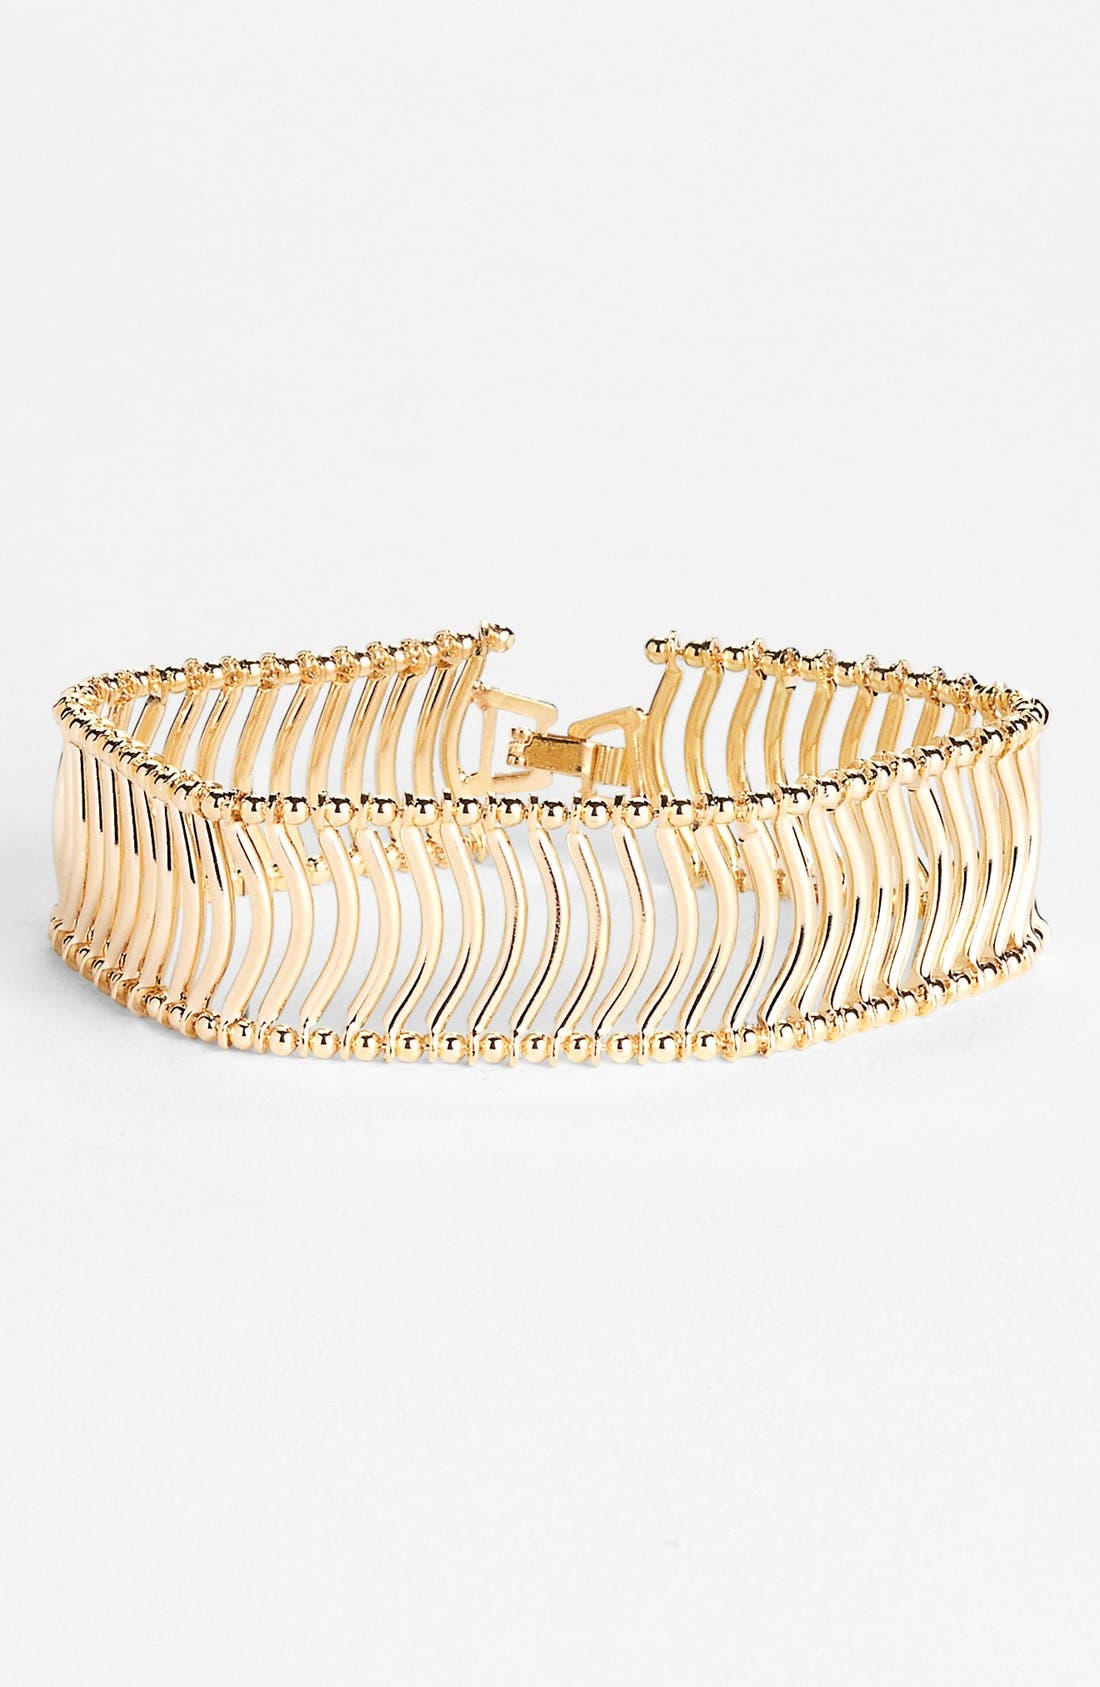 Alternate Image 1 Selected - Natasha Couture 'Ball Chain Wave' Bracelet